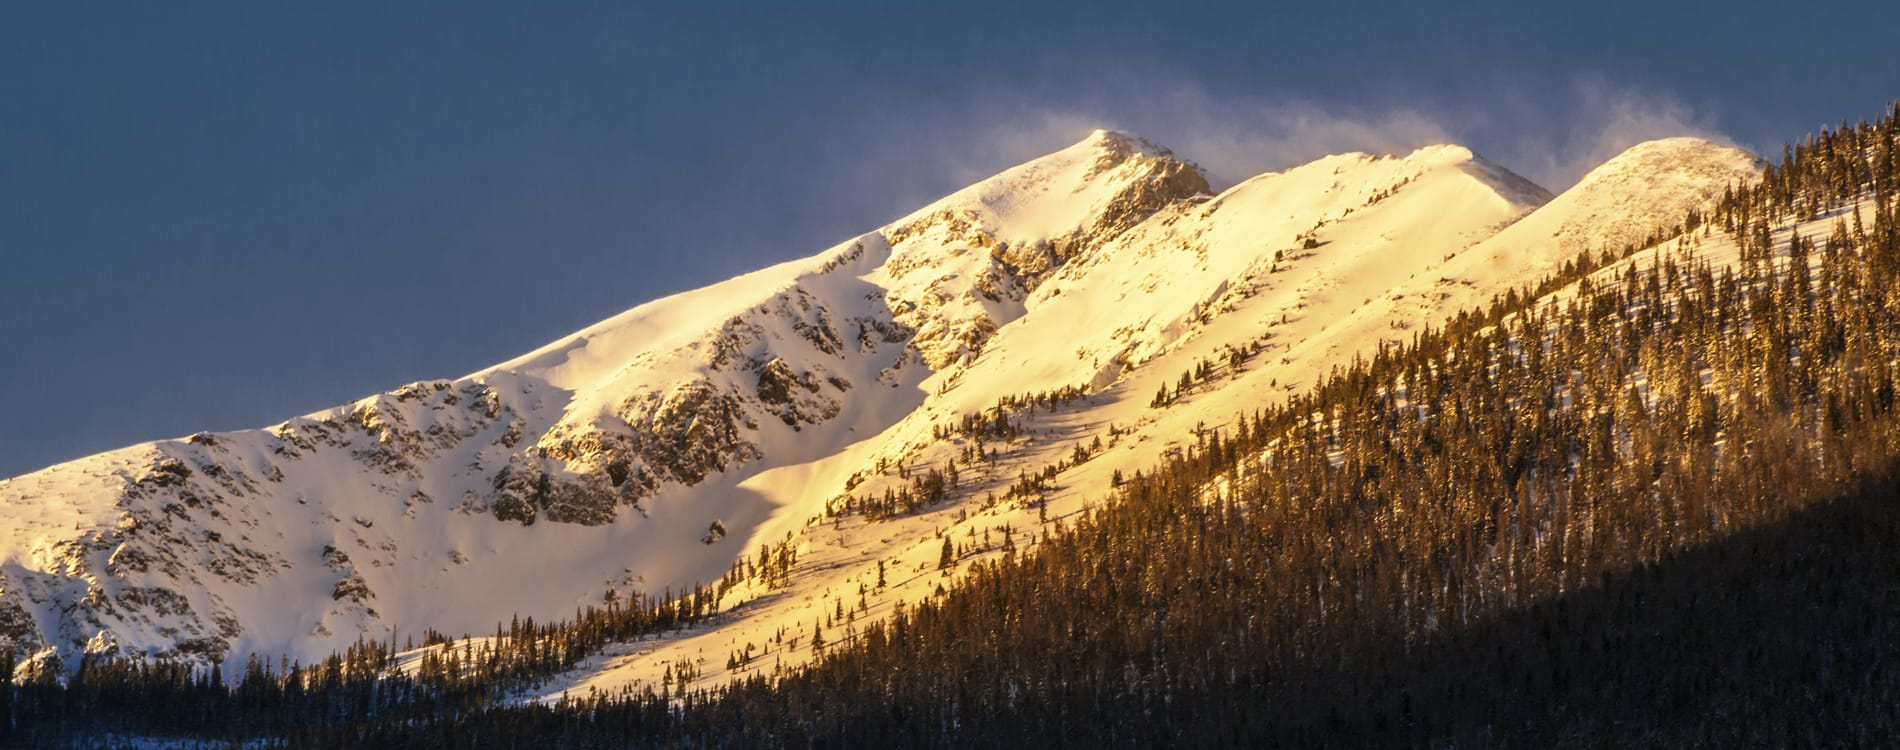 Breckenridge, CO - Rocky Mountain Sunrise